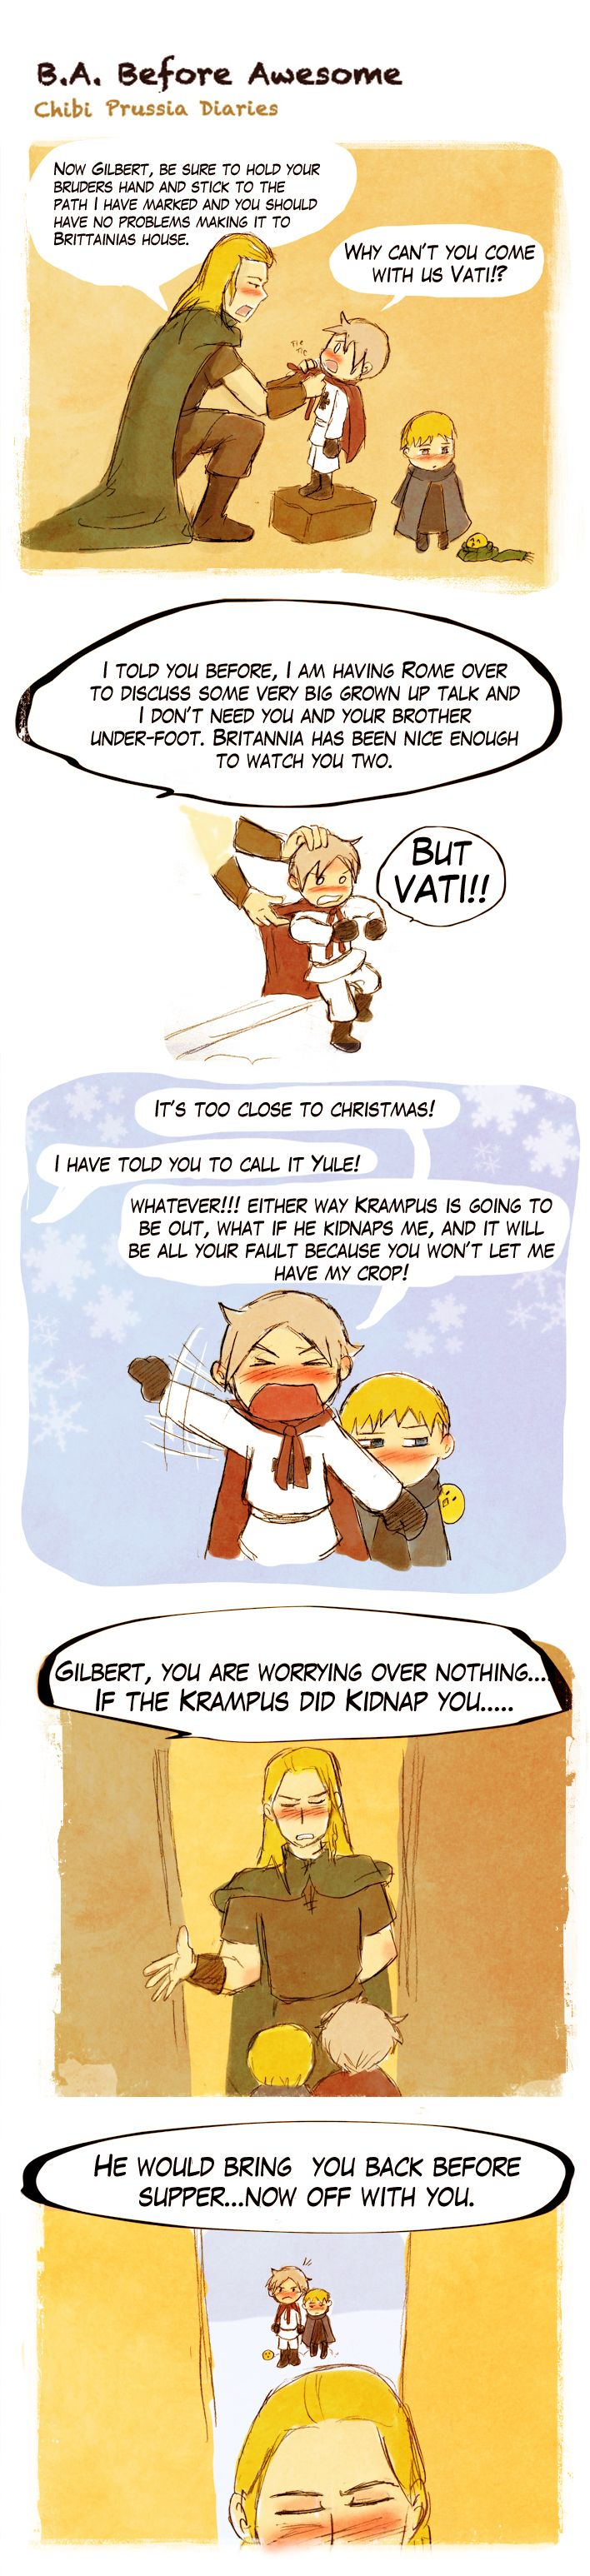 Chibi Prussia Diaries -042- by *Arkham-Insanity on deviantART  Oh Germania <3